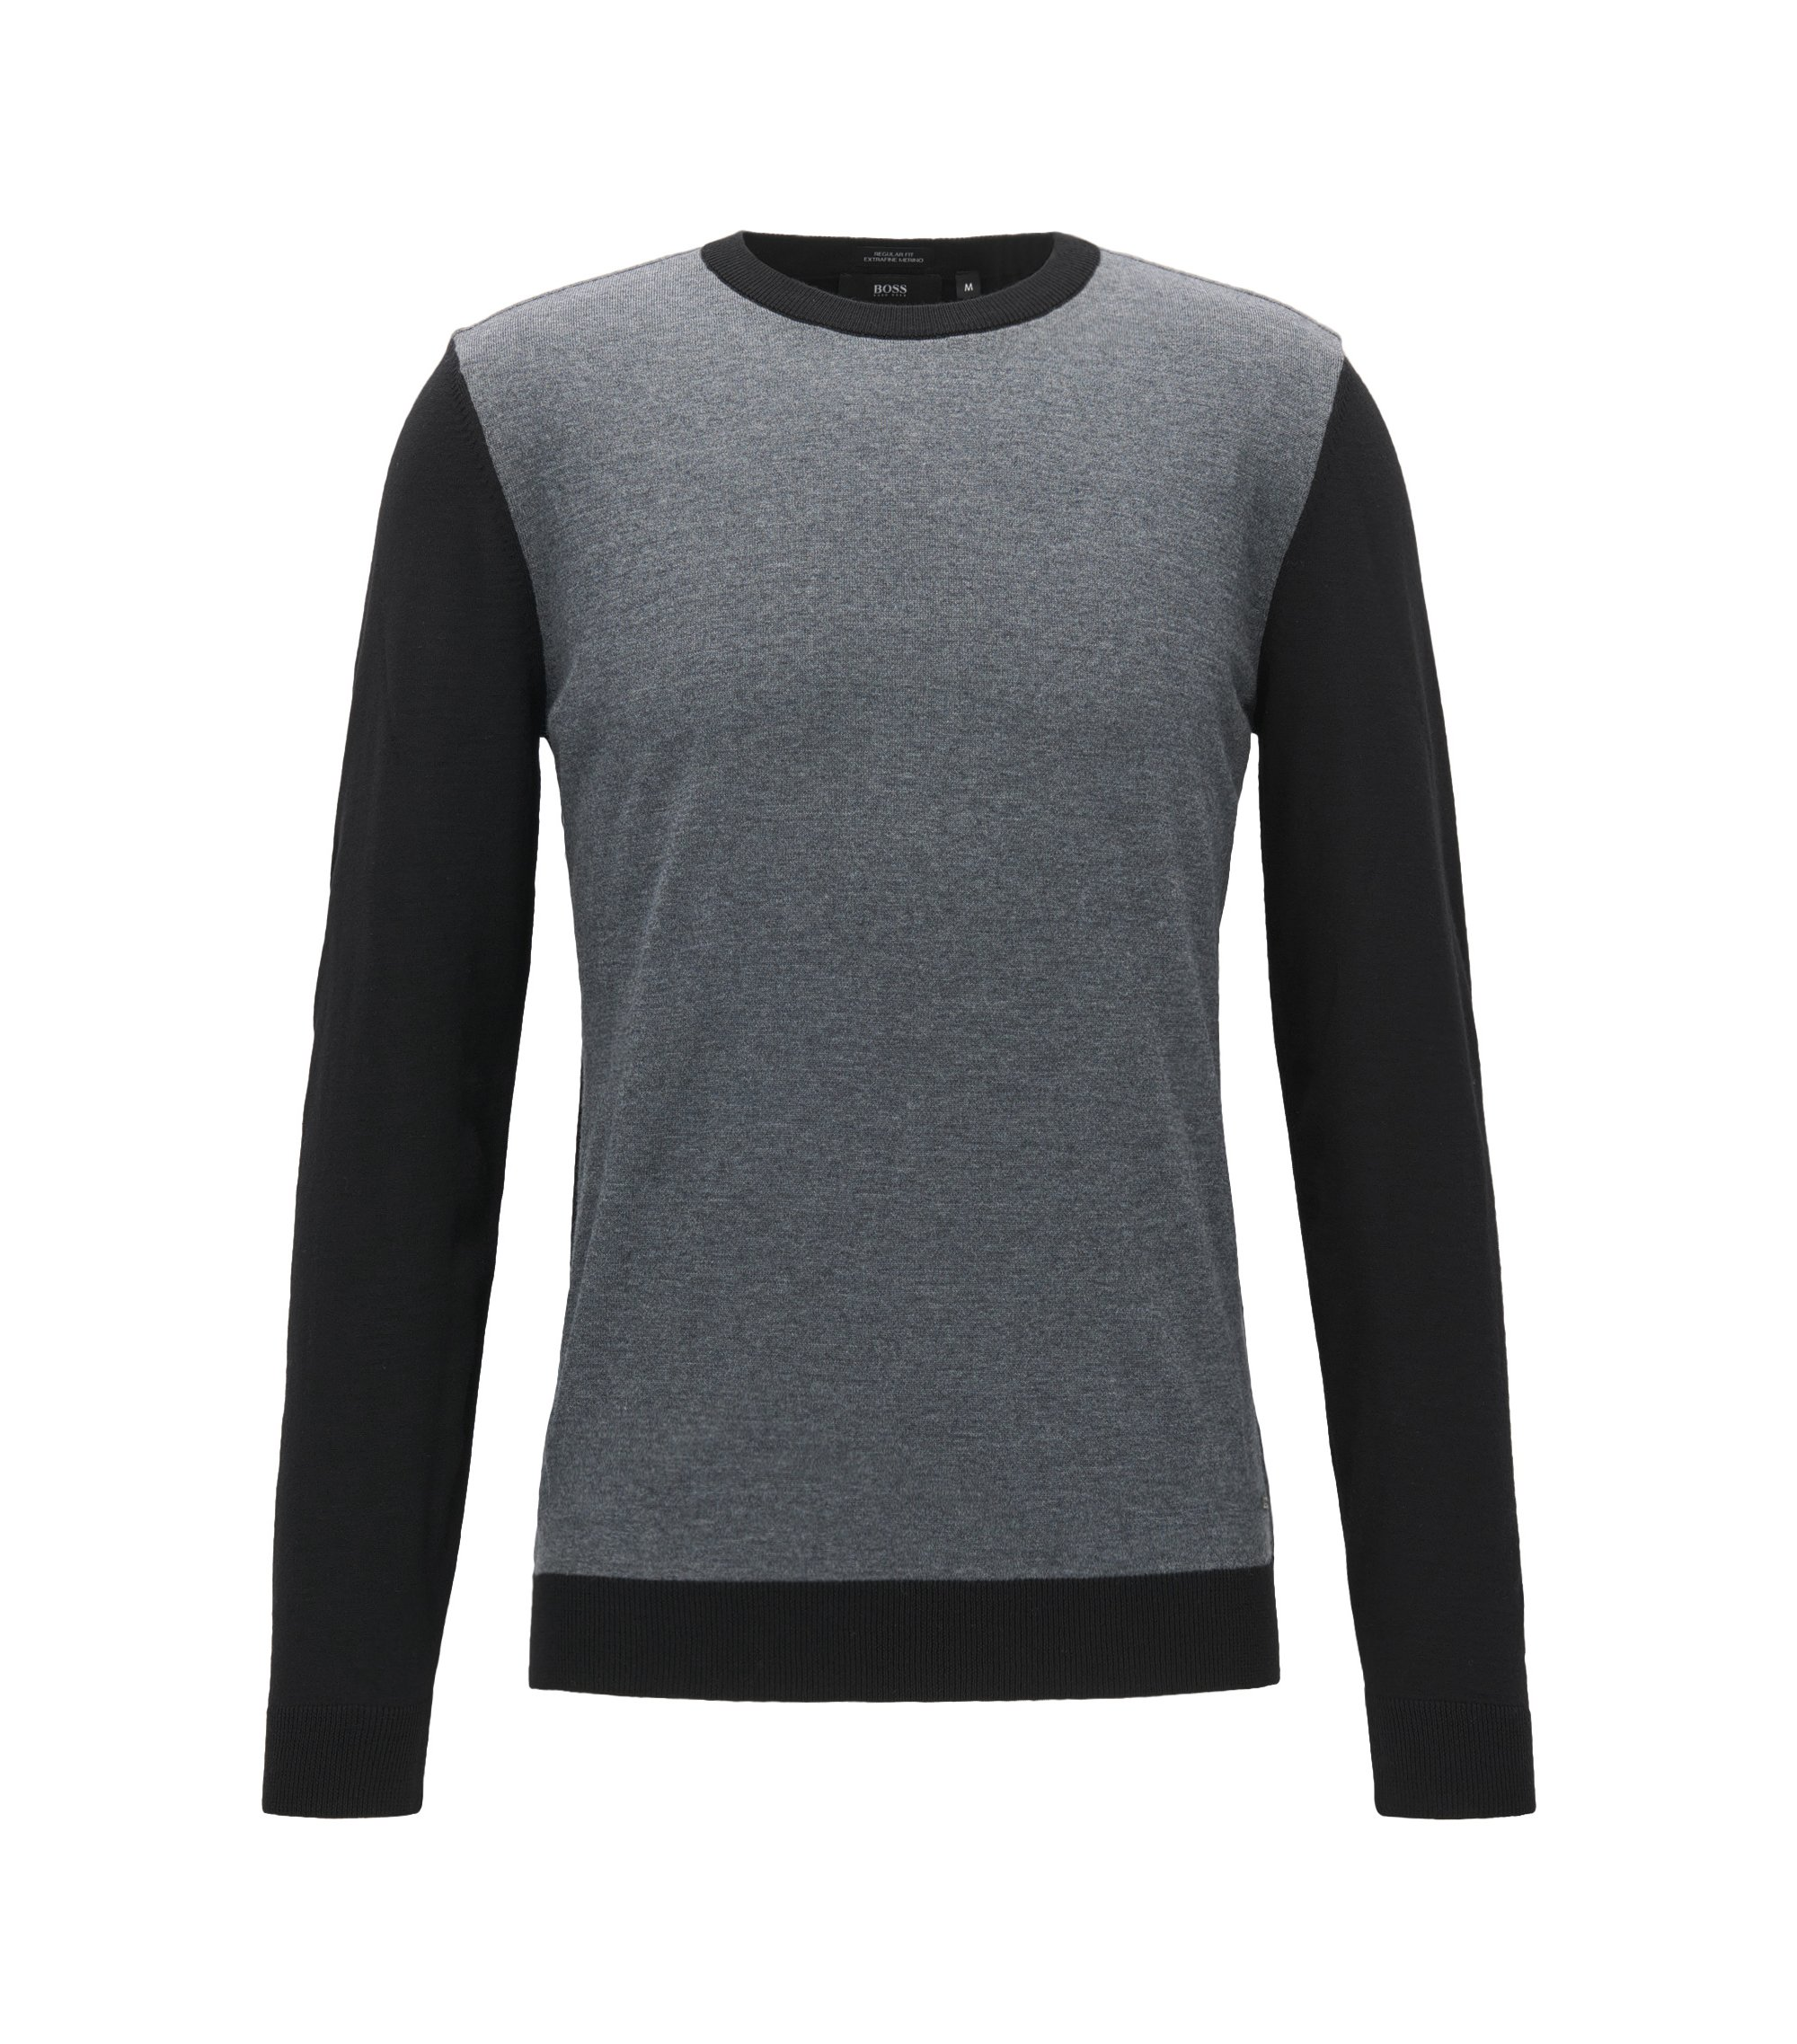 Colorblocked Merino Wool Sweater, Regular Fit | Nauro, Black